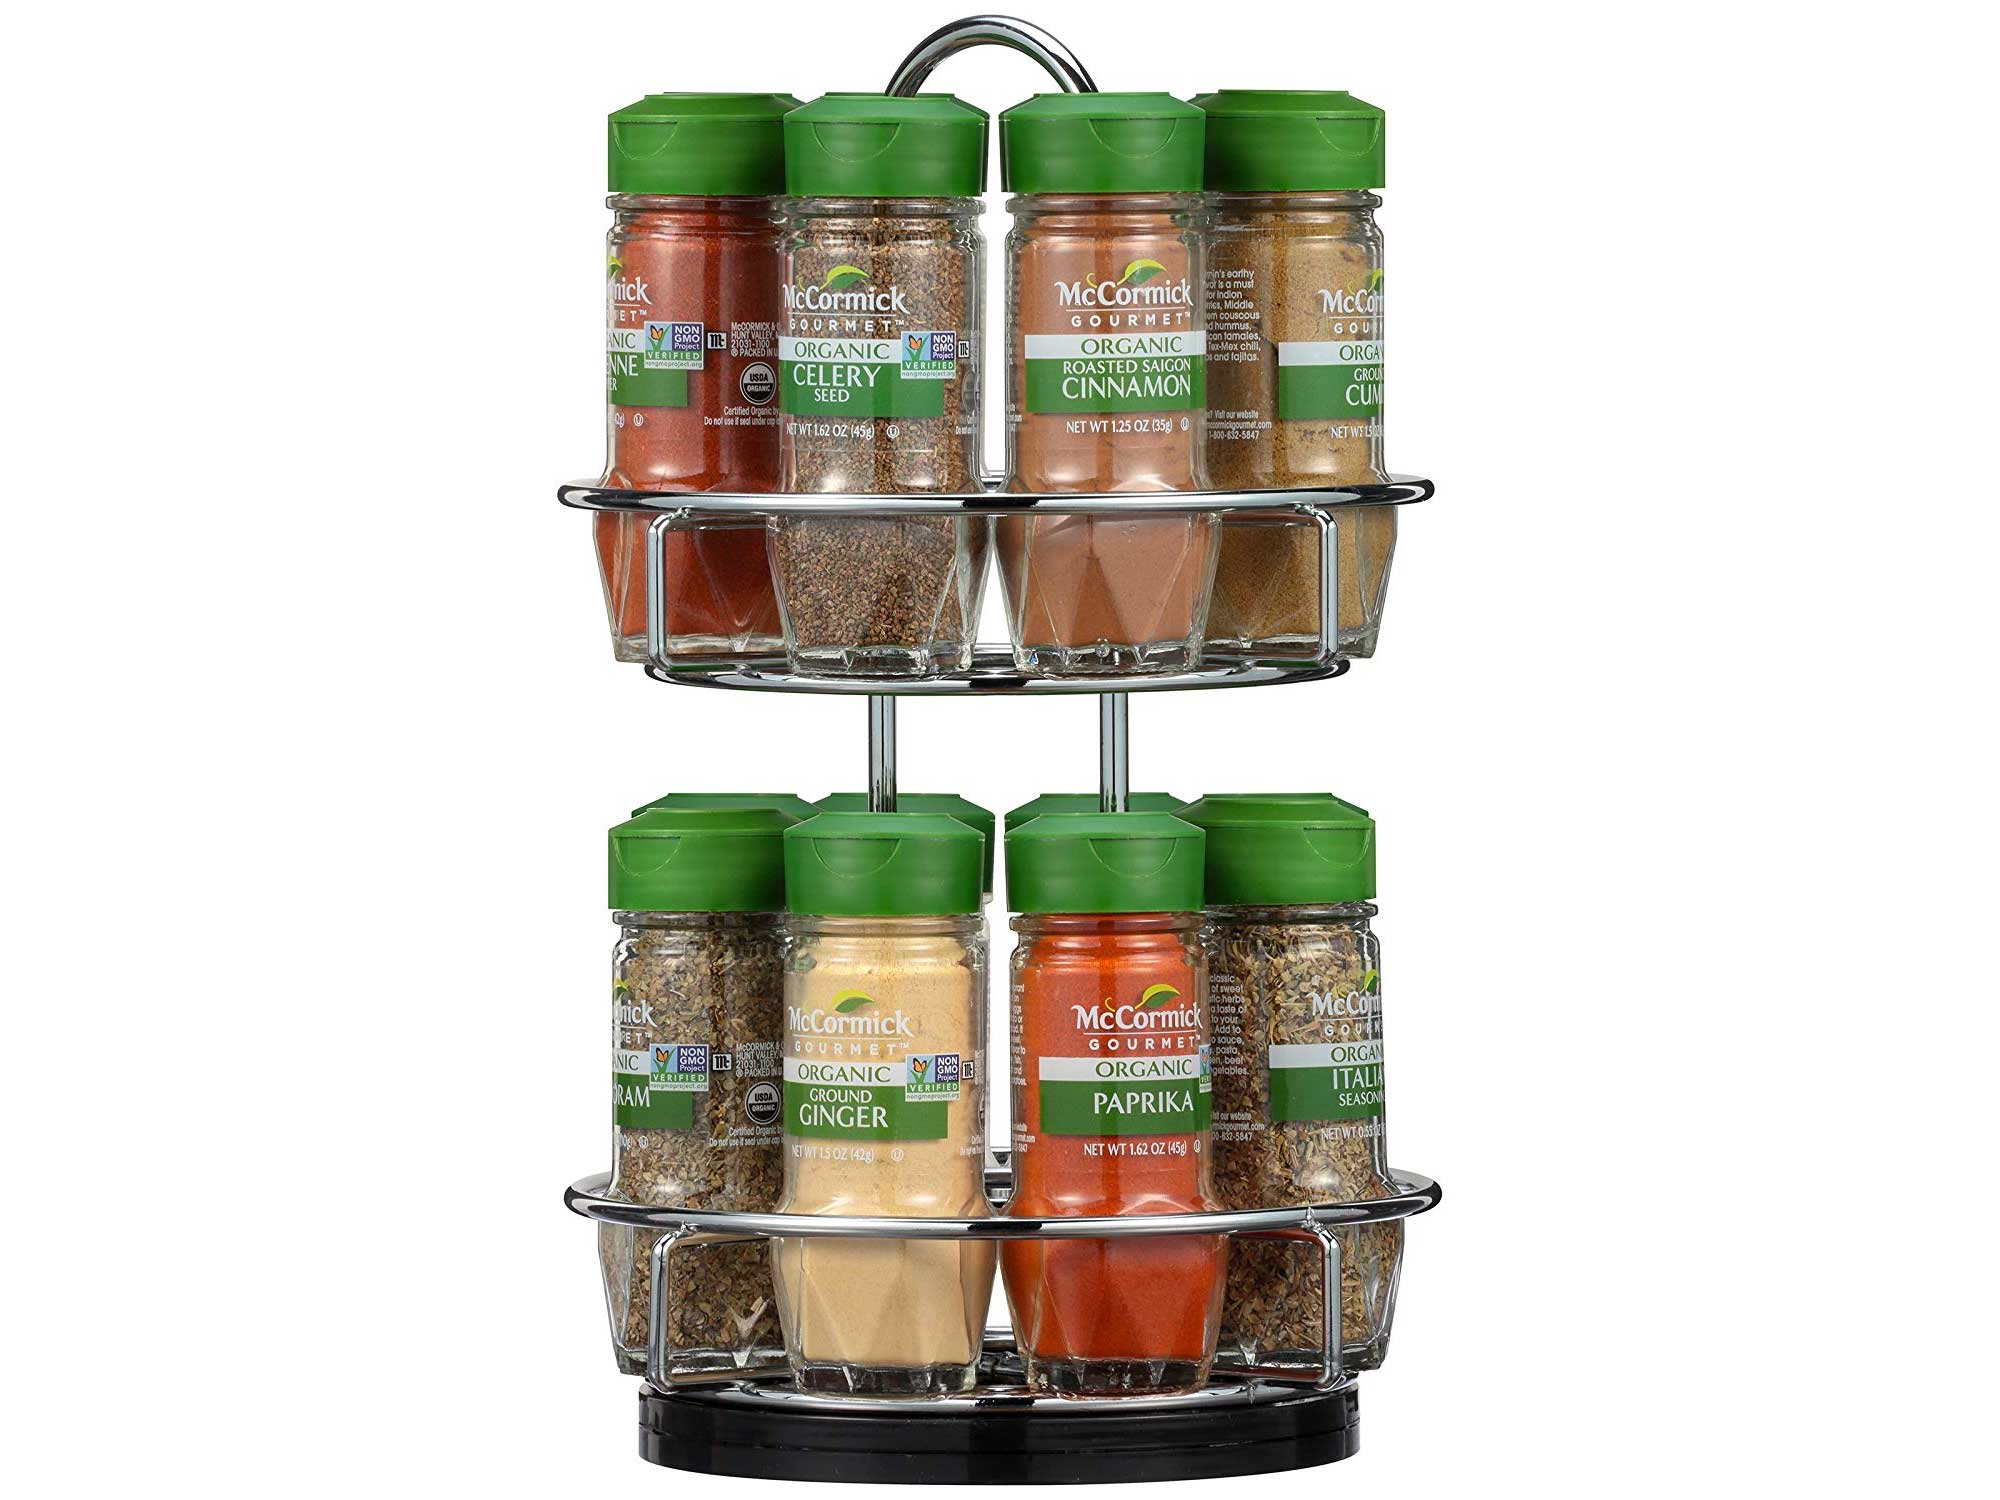 McCormick Gourmet Two Tier Chrome 16 Piece Organic Spice Rack Organizer with Spices Included, 15.41 oz